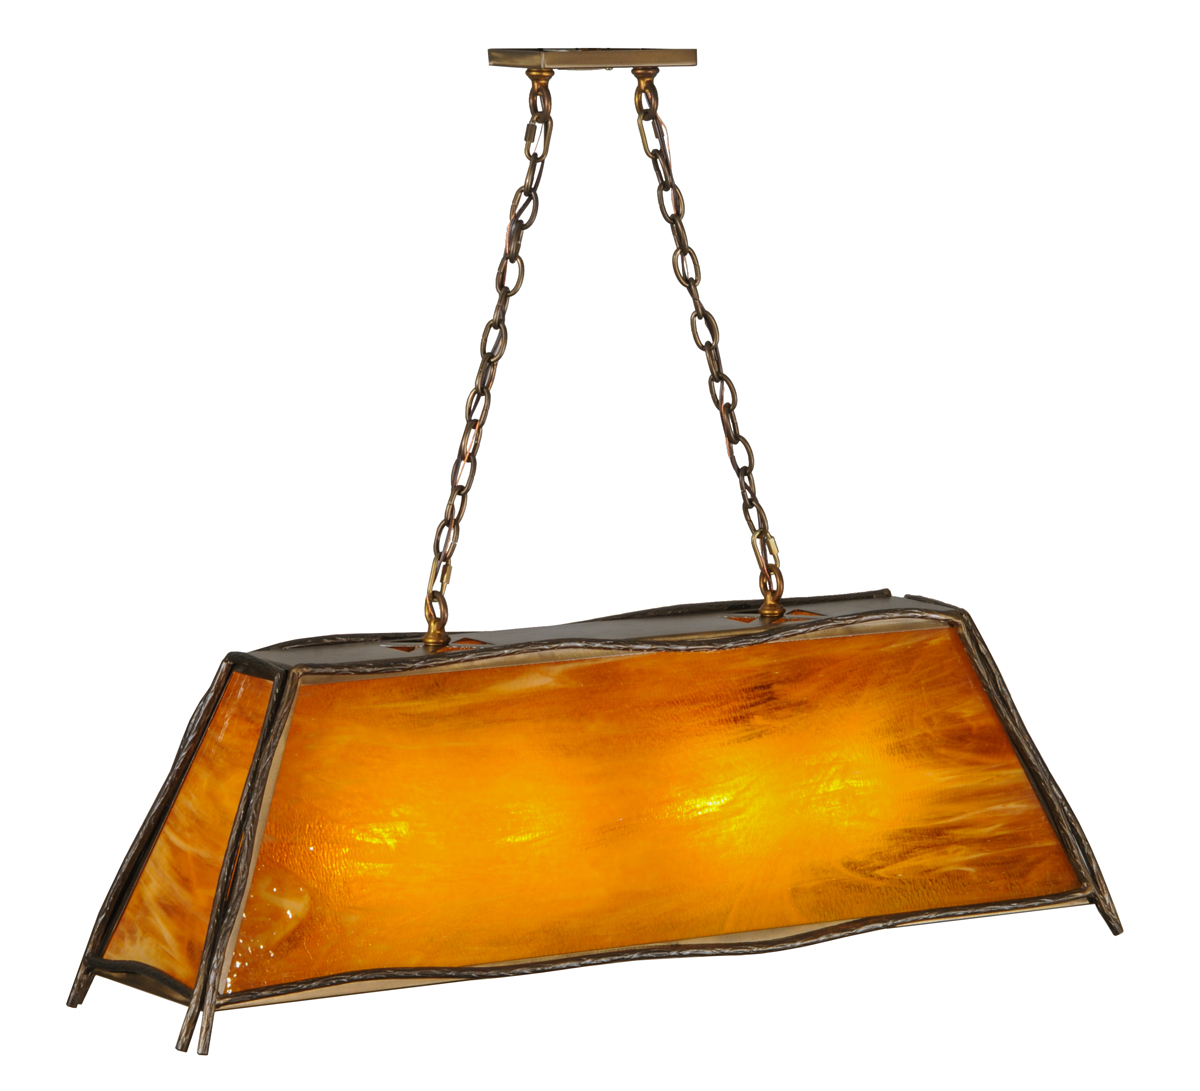 Meyda Tiffany 147249 42 Inch Length Sticks Oblong Pendant